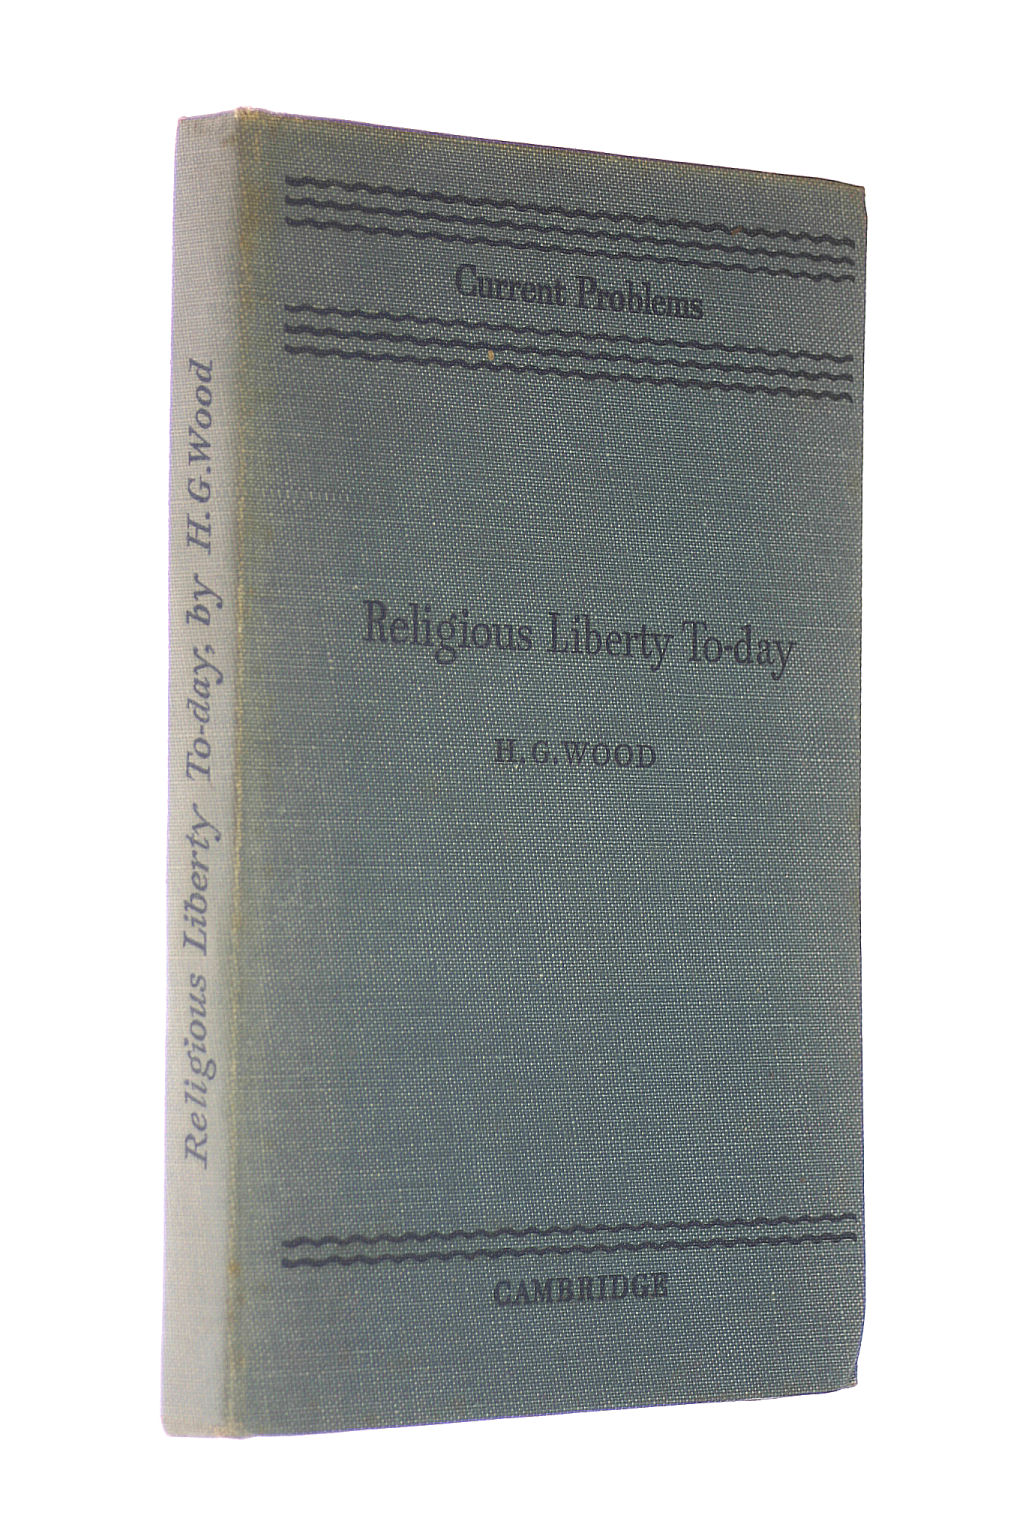 Image for Religious Liberty To-day